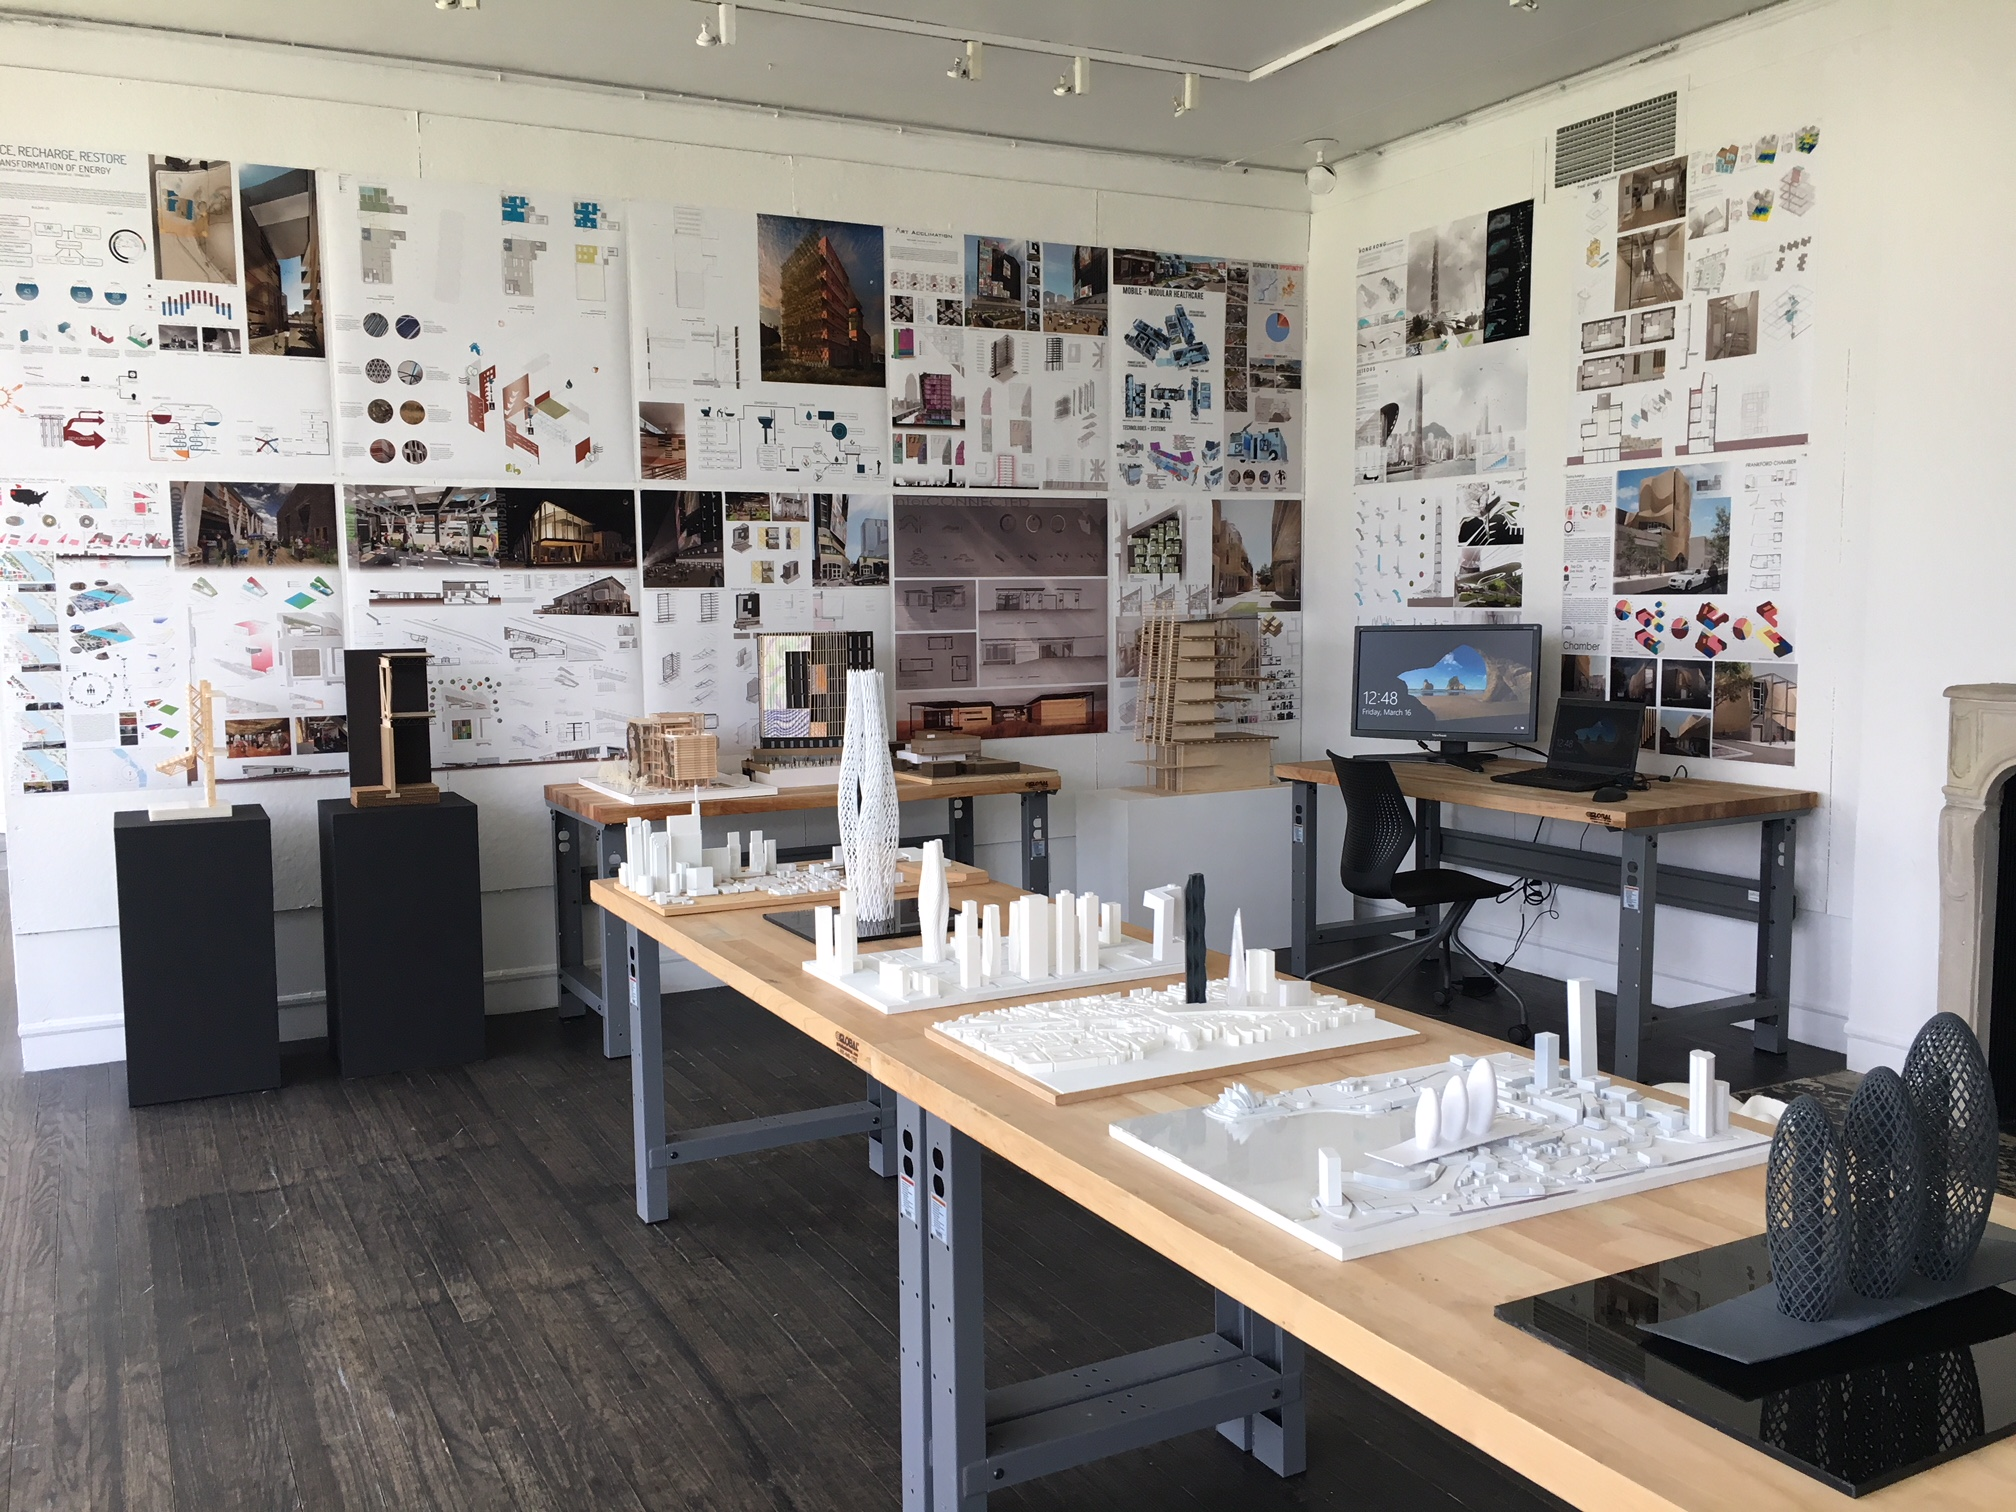 The Wide Ranging Accomplishments Of The Universityu0027s Bachelor Of  Architecture Students Were On Display At